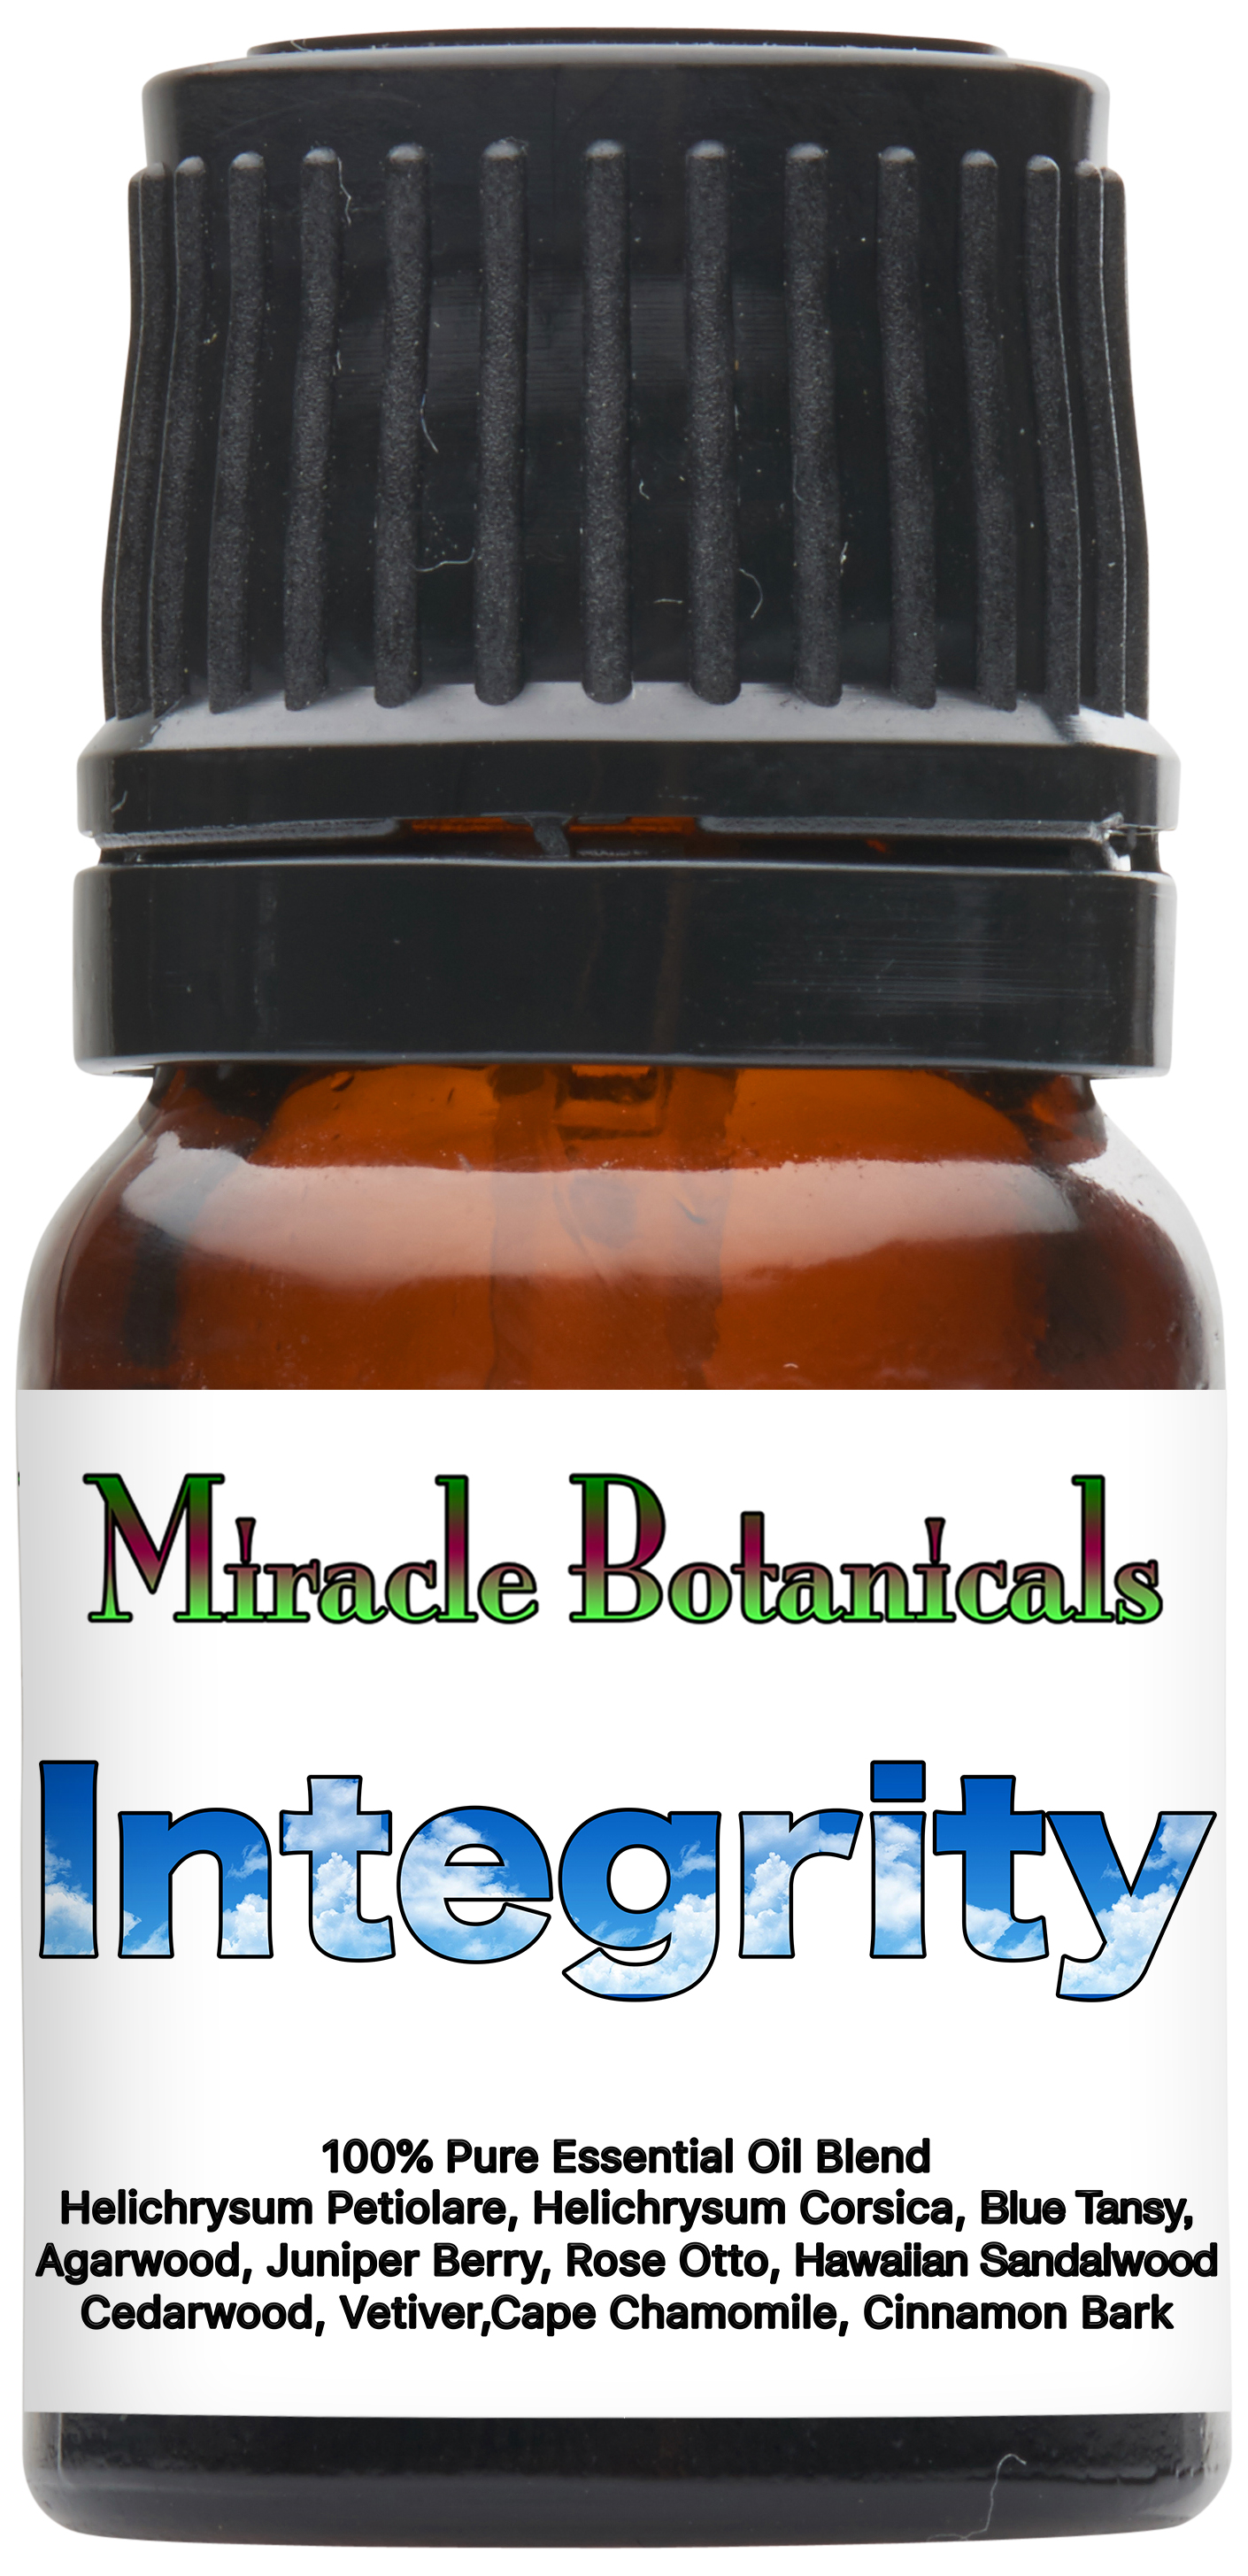 Integrity - 100% Pure Essential Oil Blend